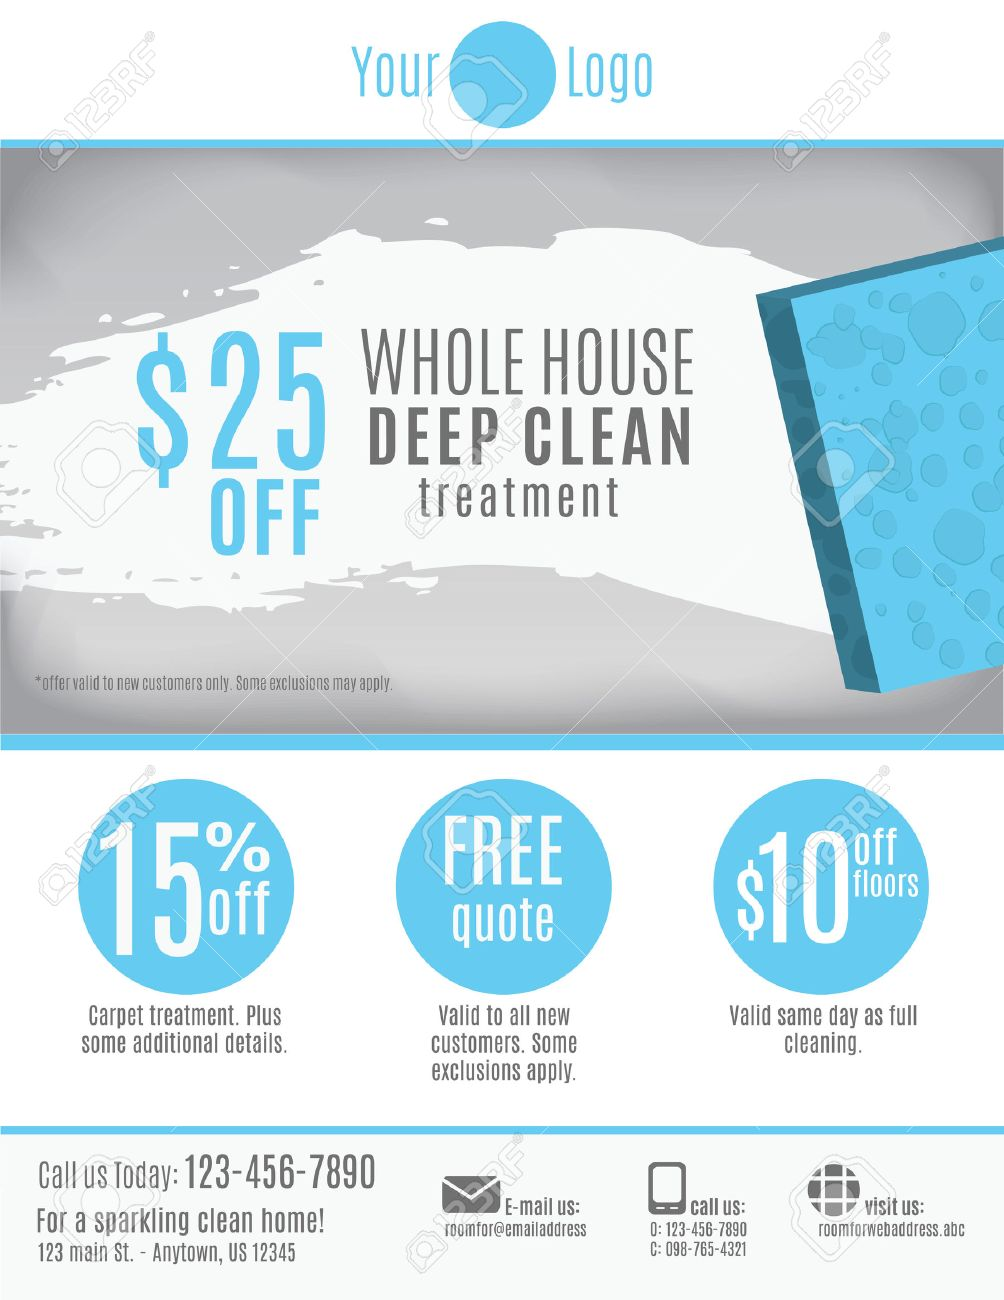 Cleaning Service Flyer Template With Discount Coupons And - Cleaning service flyer template